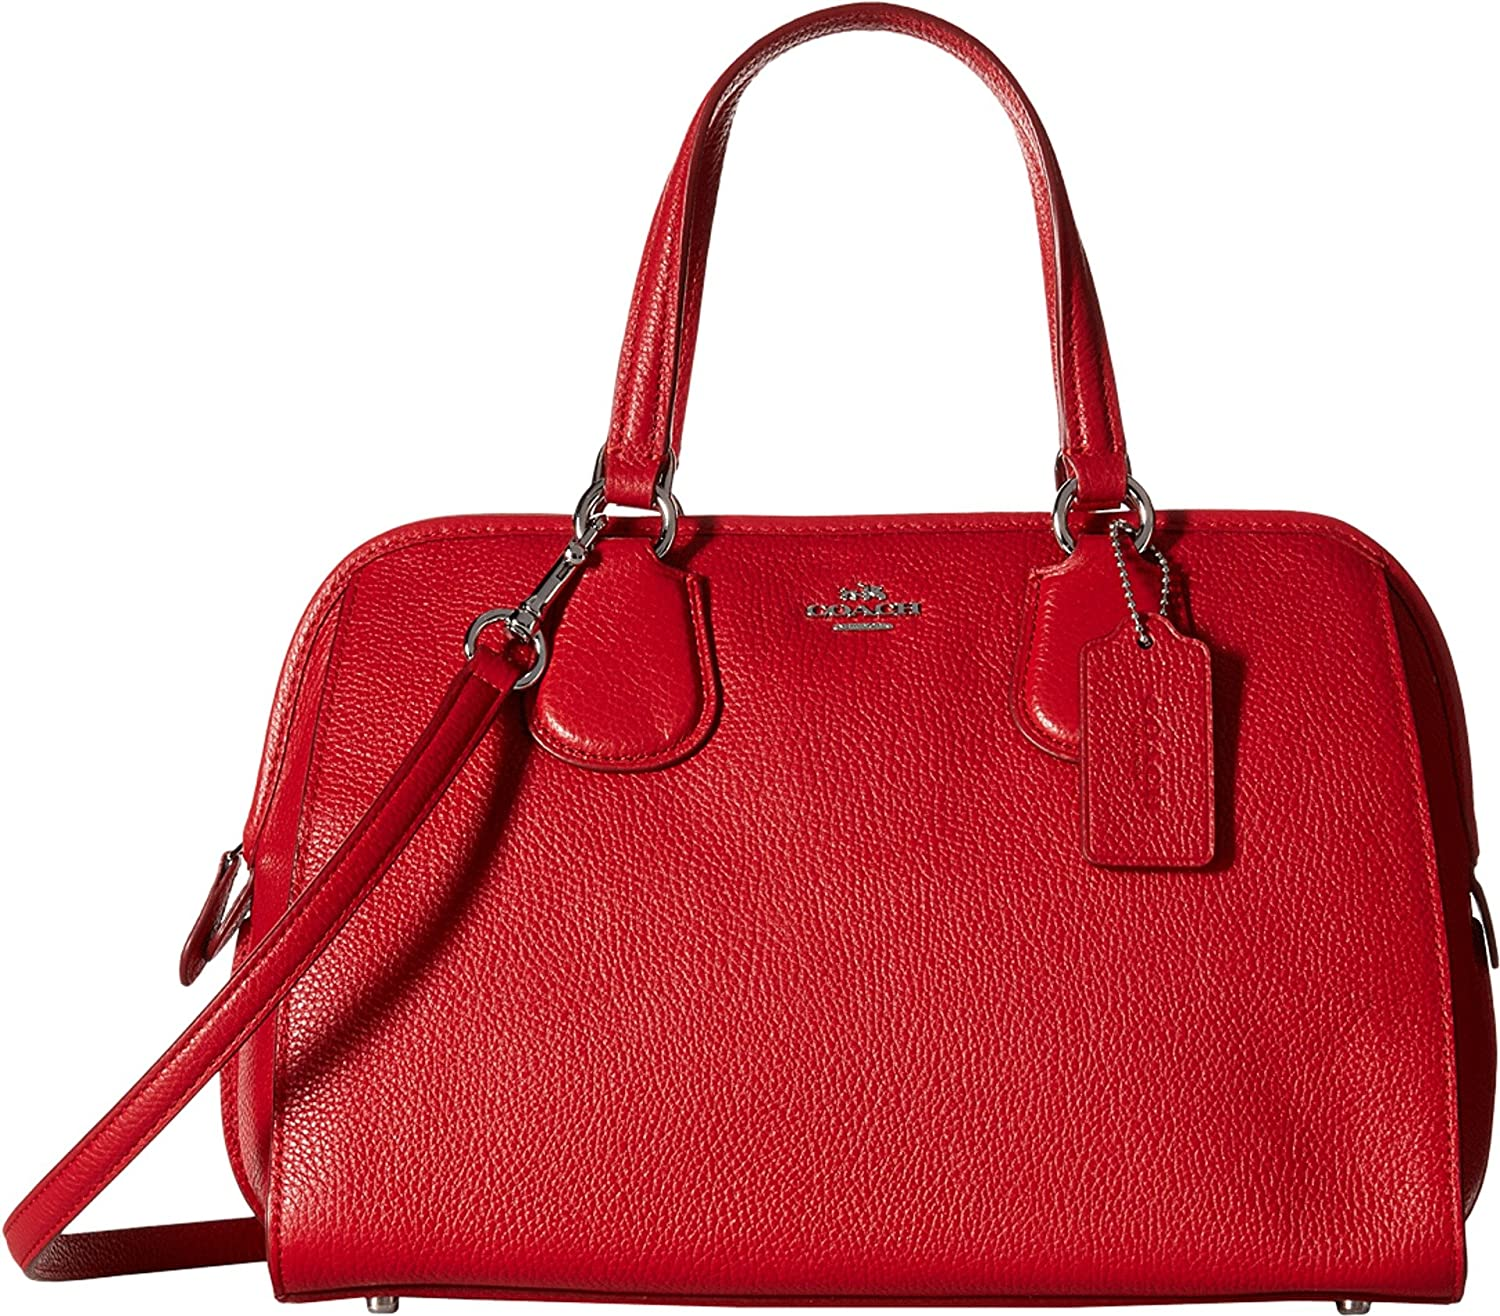 COACH Women's Pebbled Nolita Satchel SV/True Red Satchel